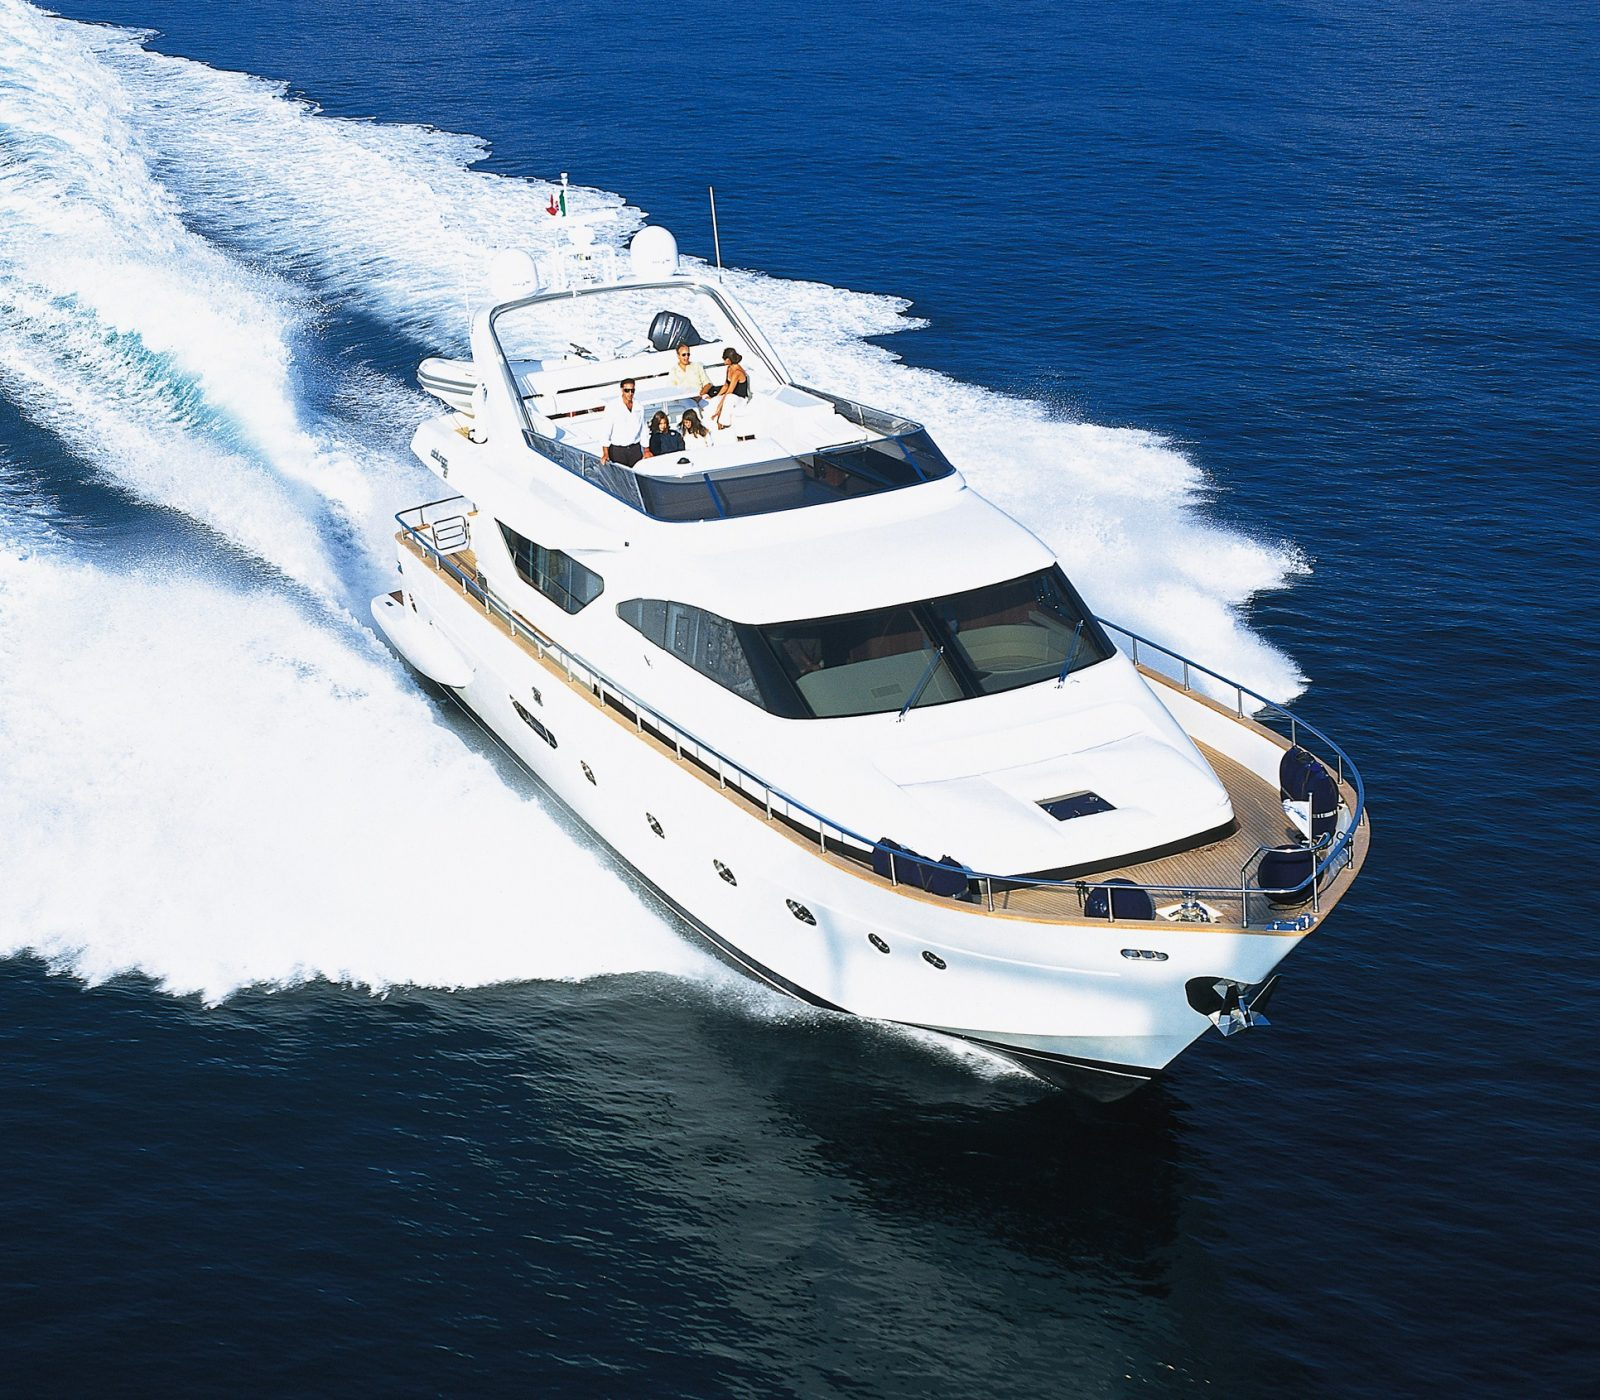 Luxury yacht for Charter | RIVIERA by Alalunga / C.N. Spertini